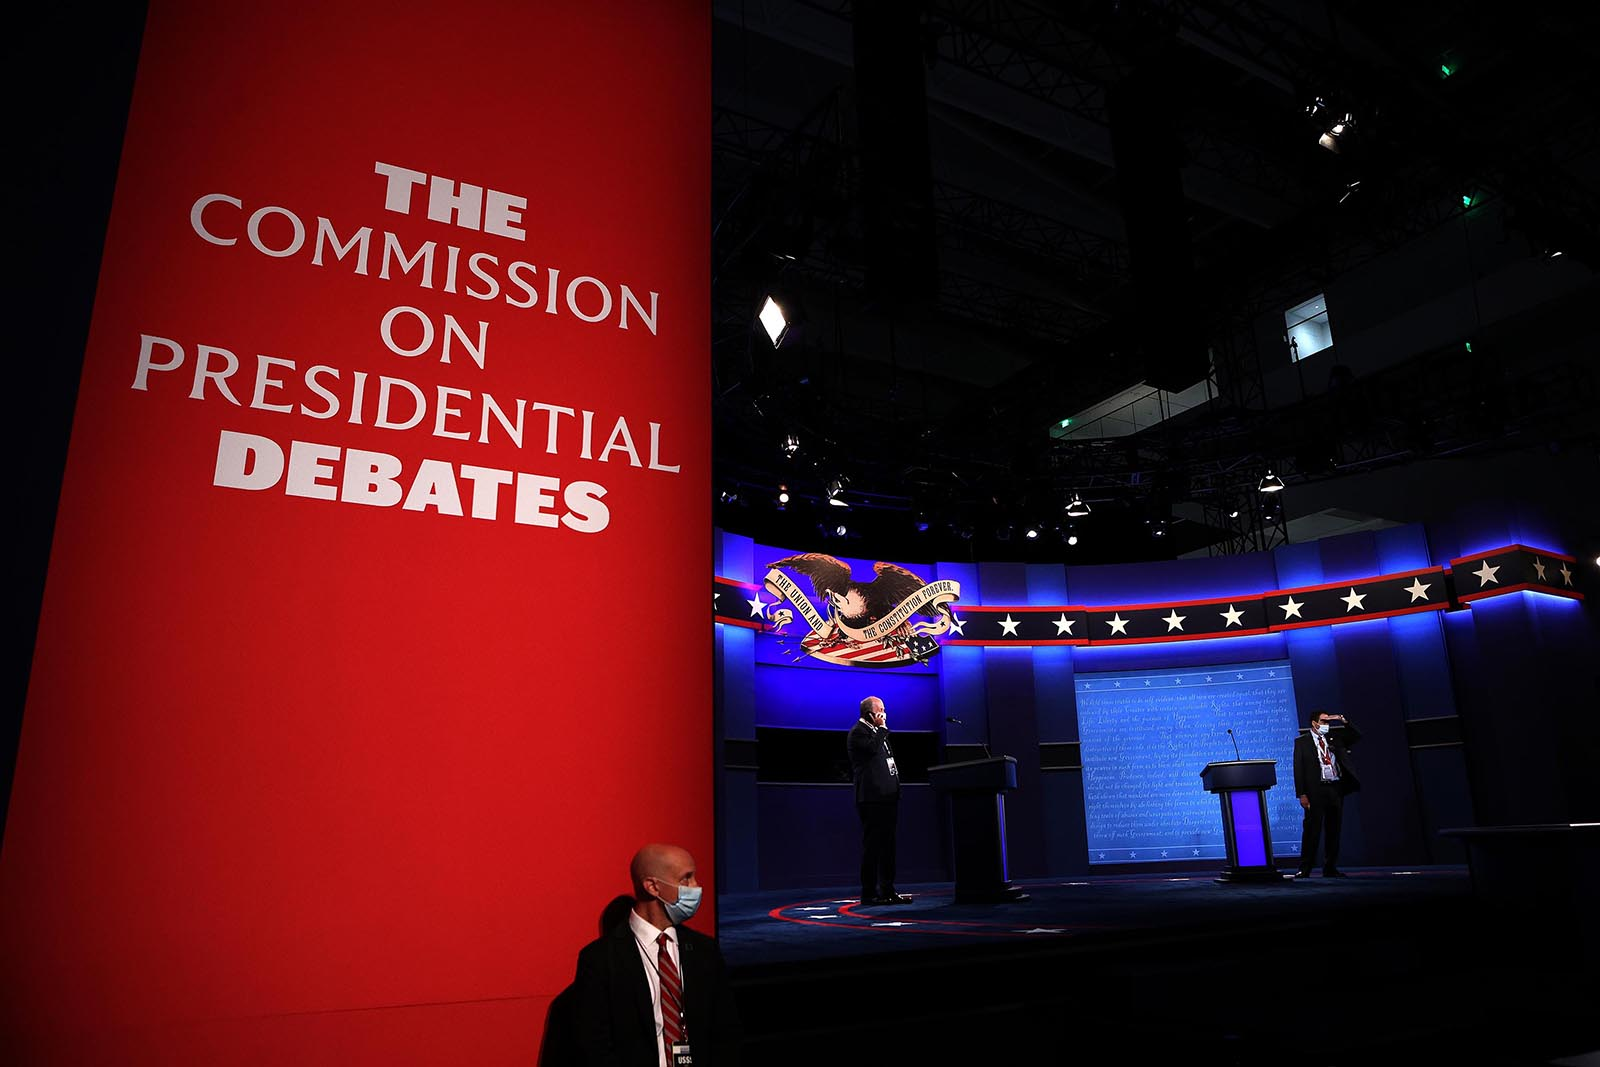 The debate stage is set for President Donald Trump and Democratic presidential nominee Joe Biden to participate in the first presidential debate at the Health Education Campus of Case Western Reserve University on September 29 in Cleveland, Ohio.